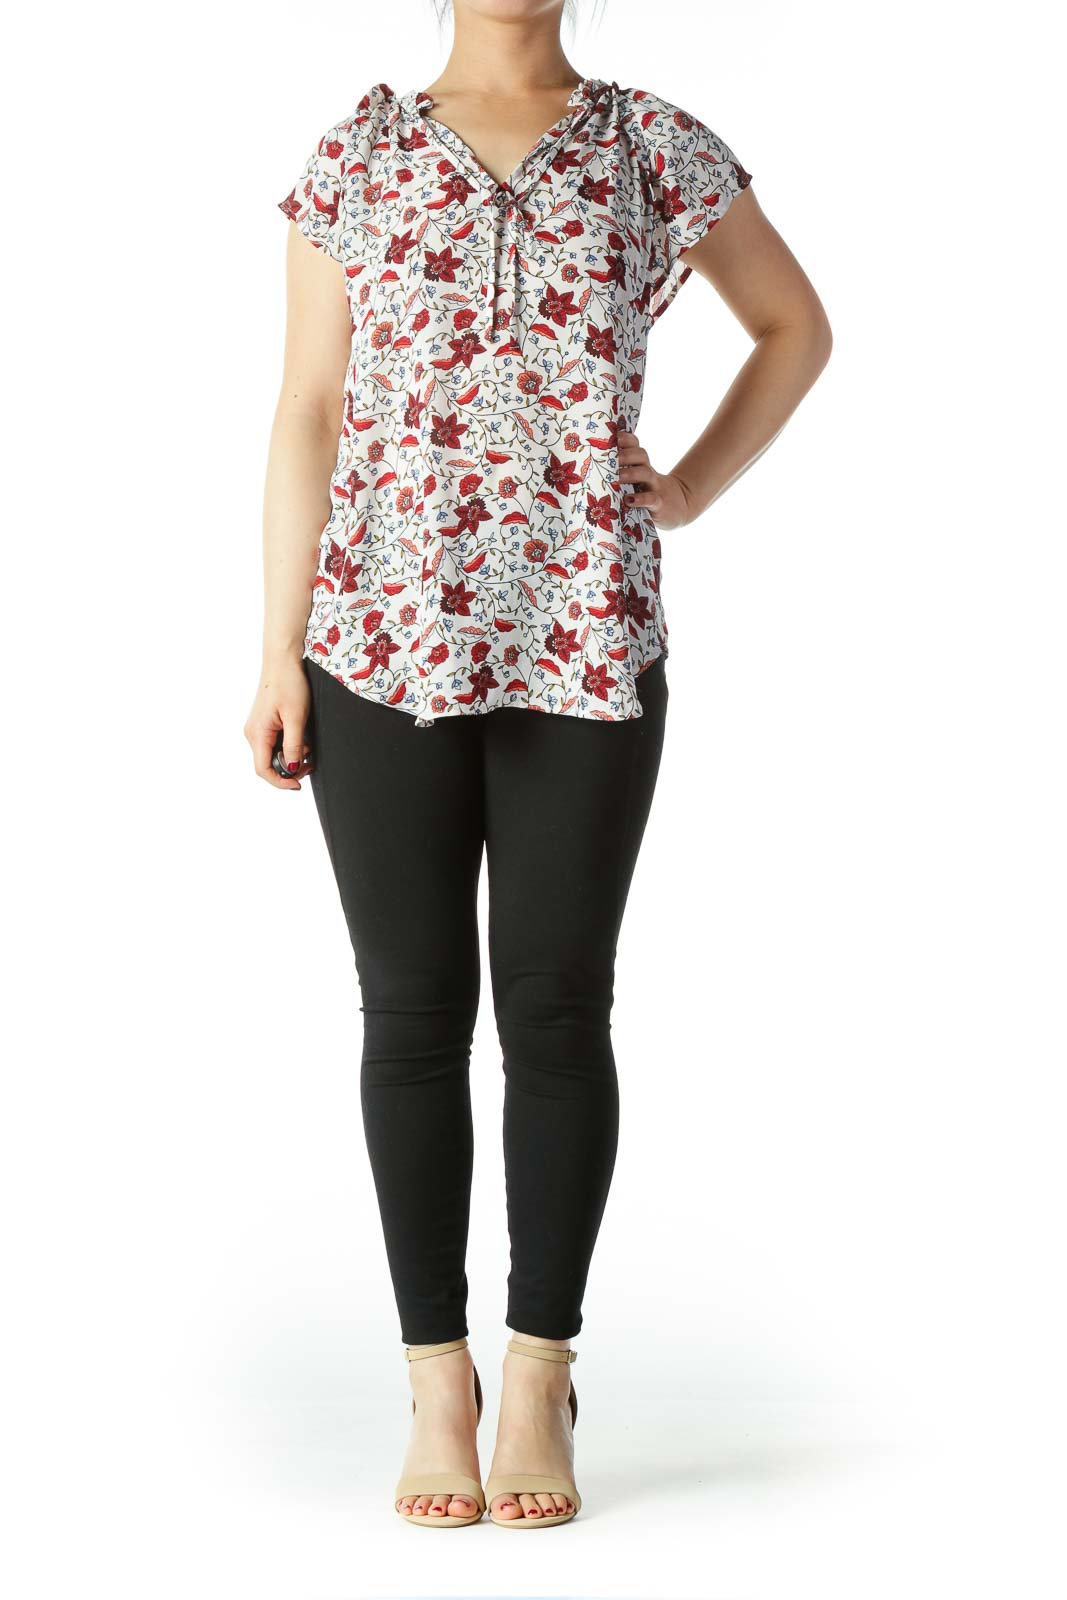 Multicolored Floral Print Flare Detail Shift Top